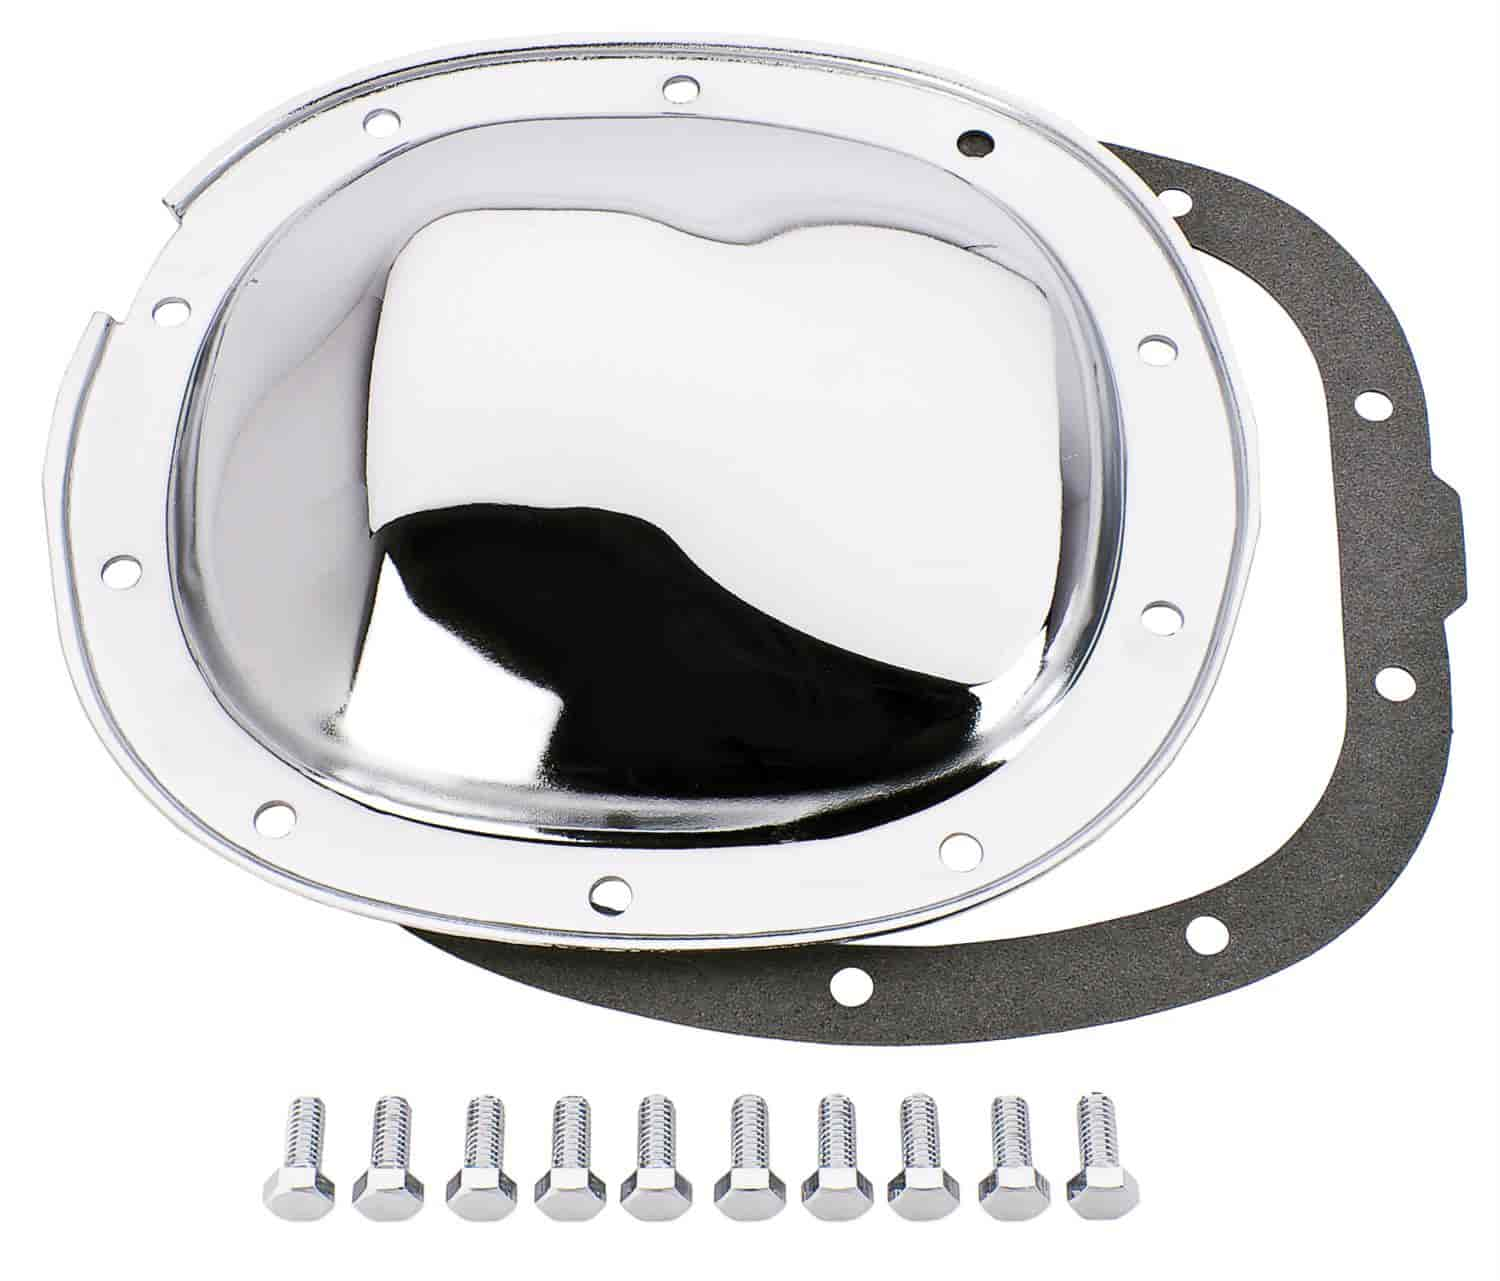 JEGS Performance Products 62511 - JEGS Chrome Rear Differential Covers